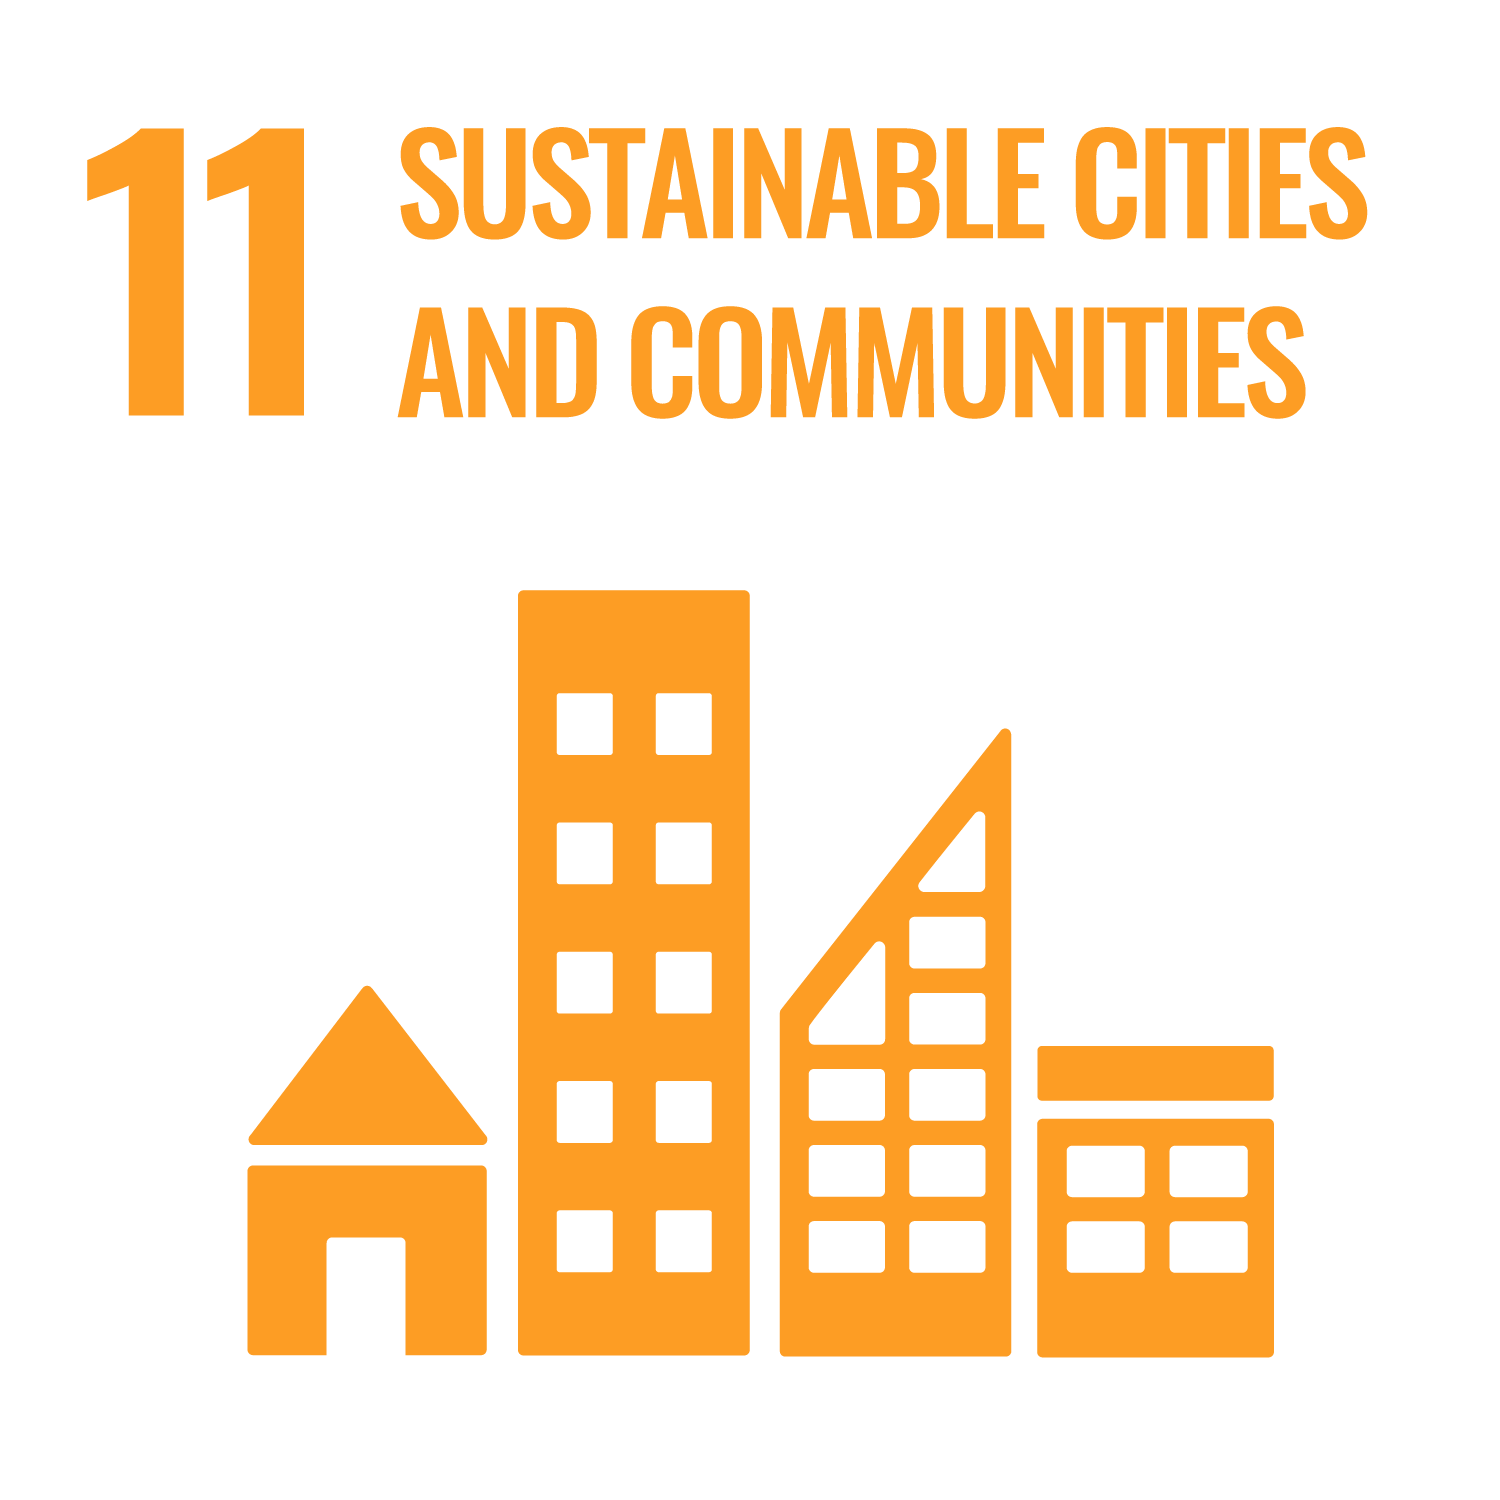 (11) Sustainable Cities and Communities